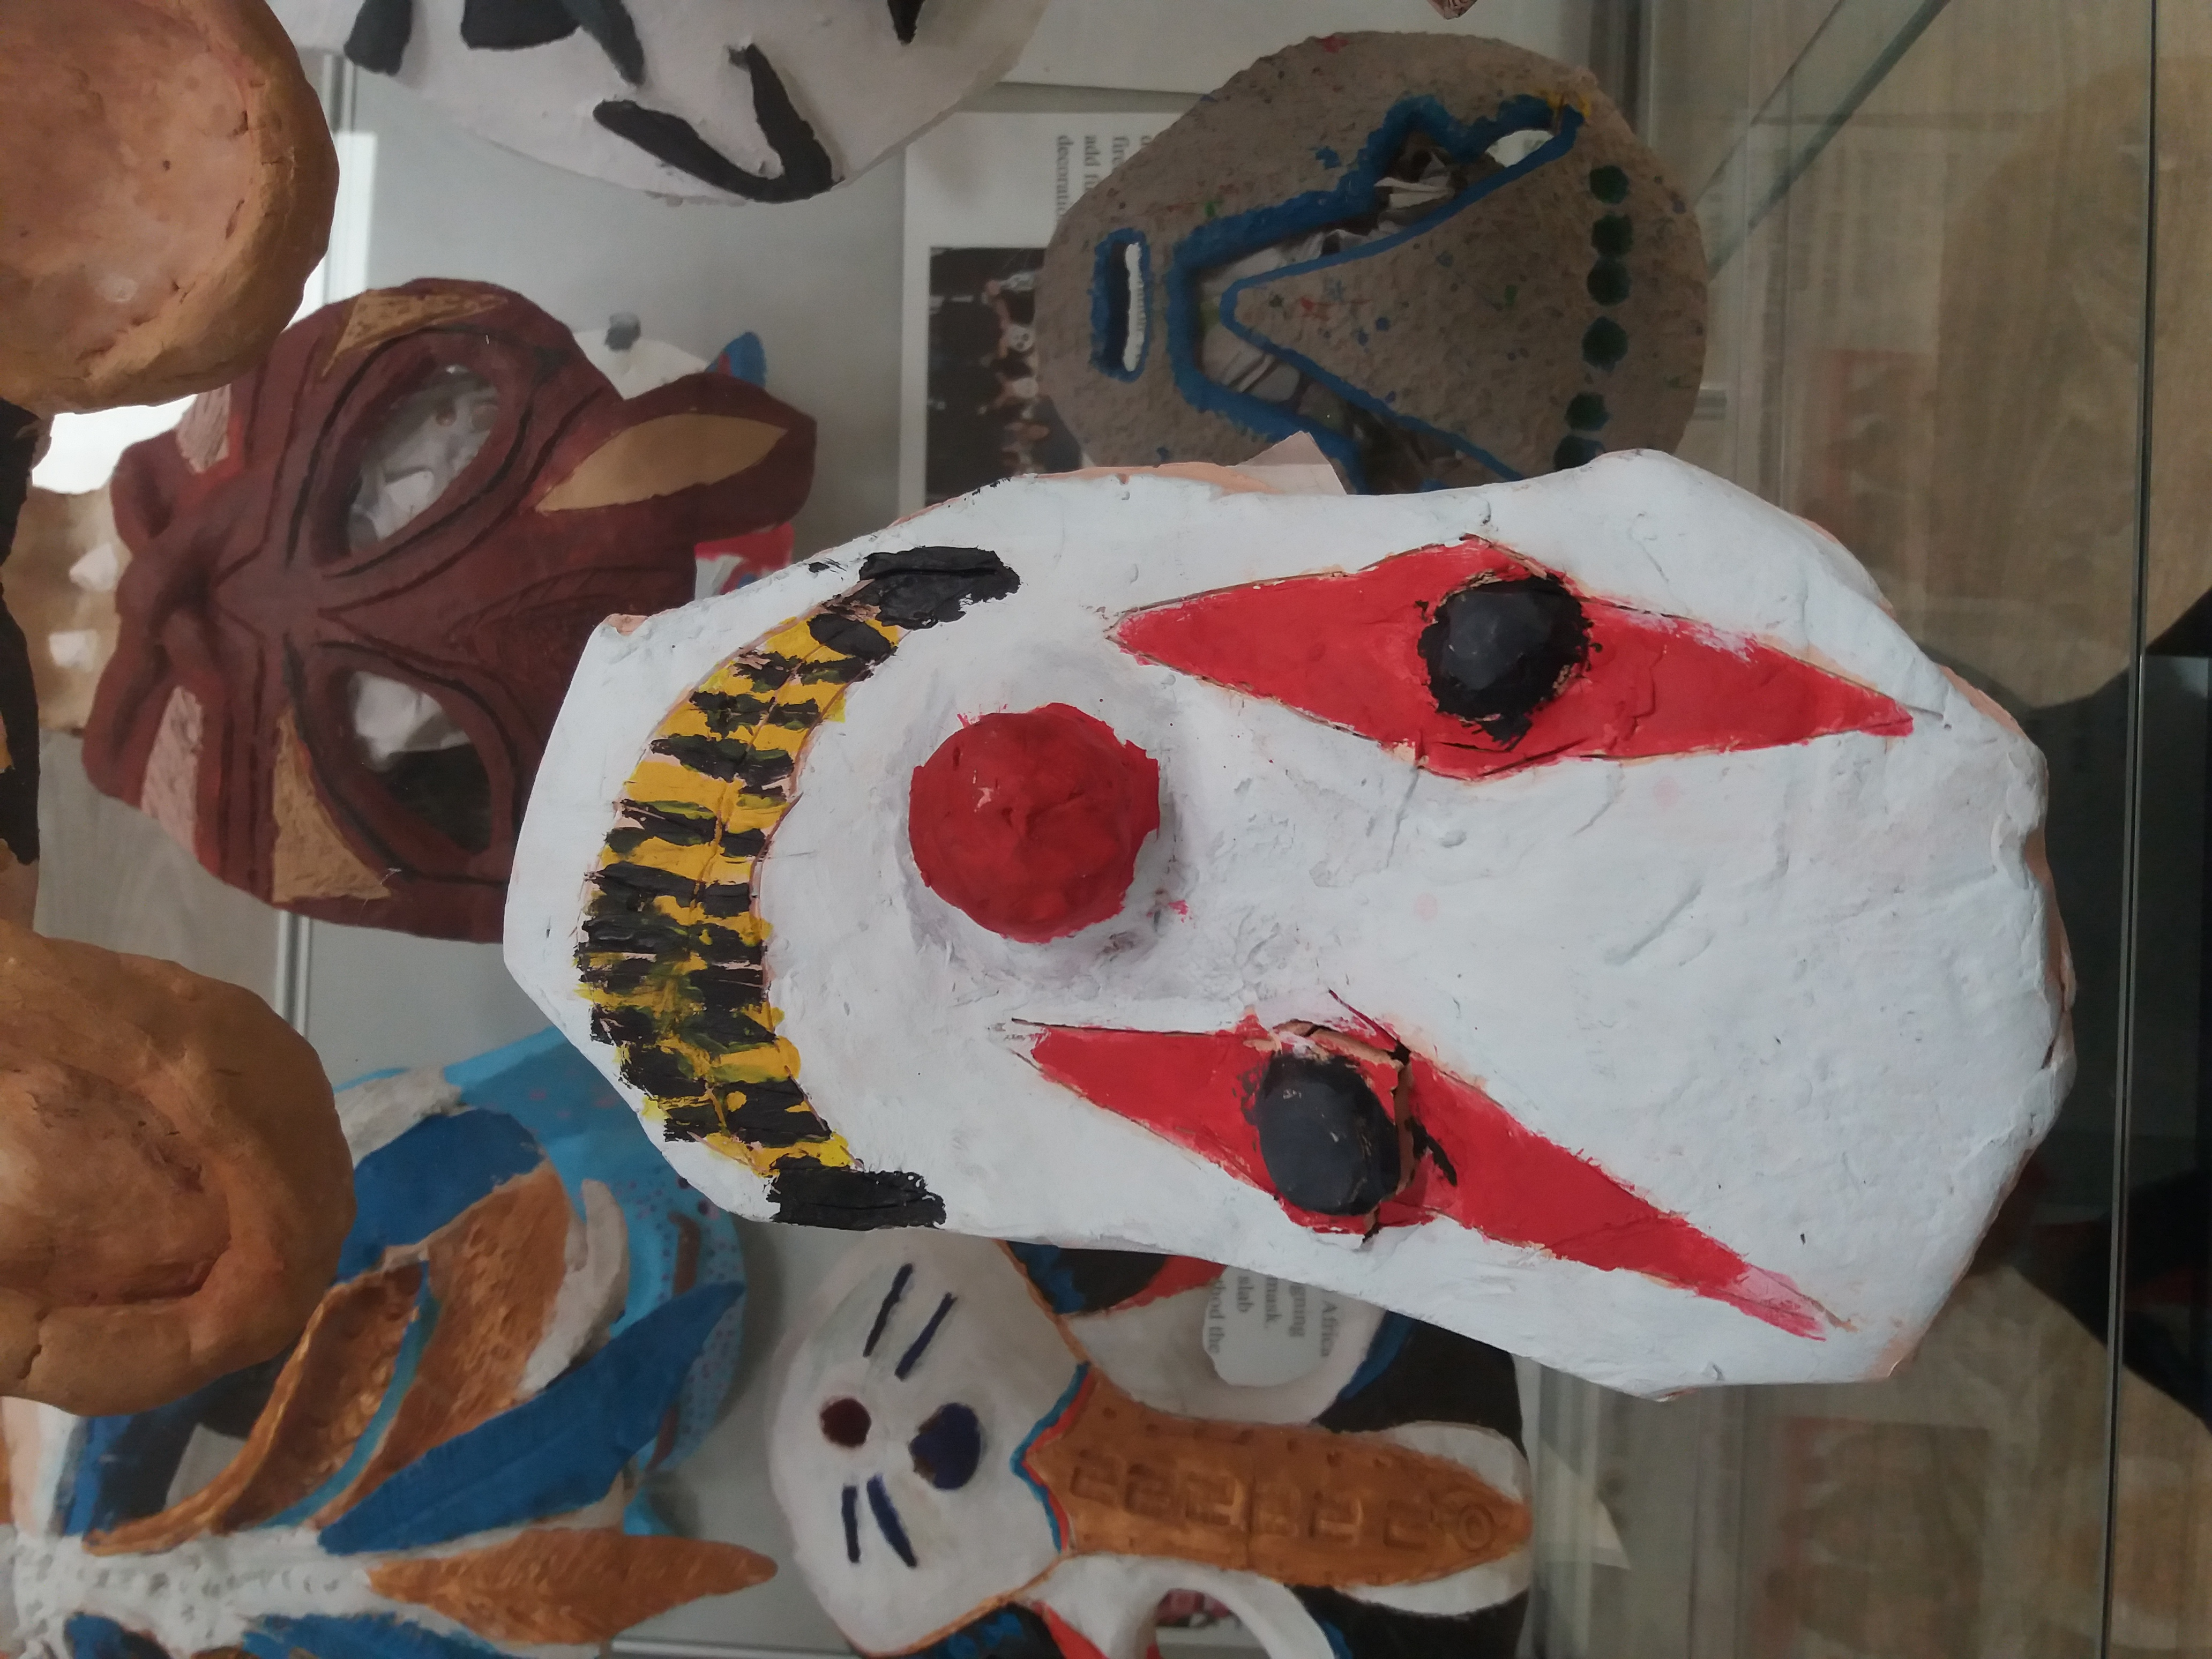 Masks on display in hinchingbrooke hospital by year 8 art students